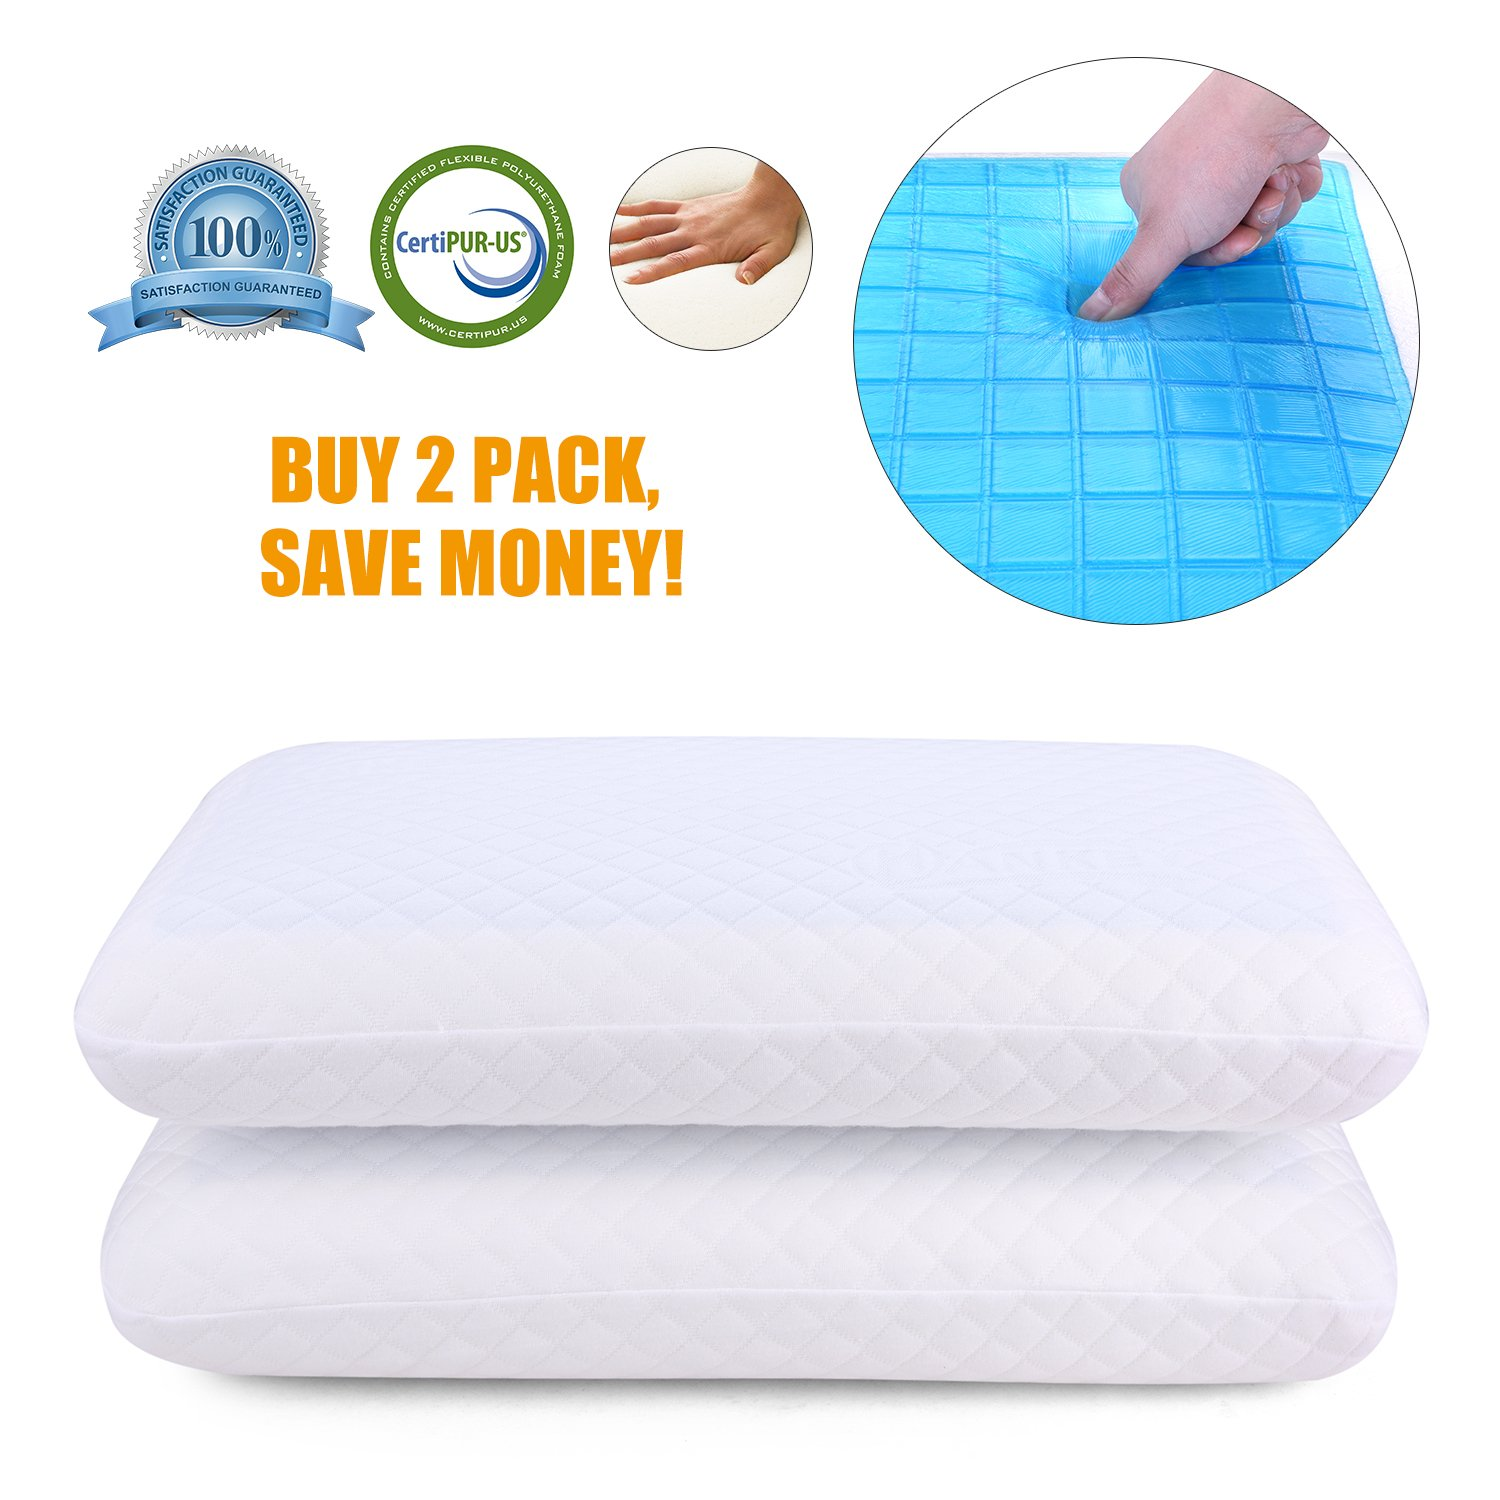 2 Pack Memory Foam Pillow with Cooling Gel– Orthopaedic Neck & Back Support, Soft & Comfortable Design, Washable Cover, Hypoallergenic Double Sided